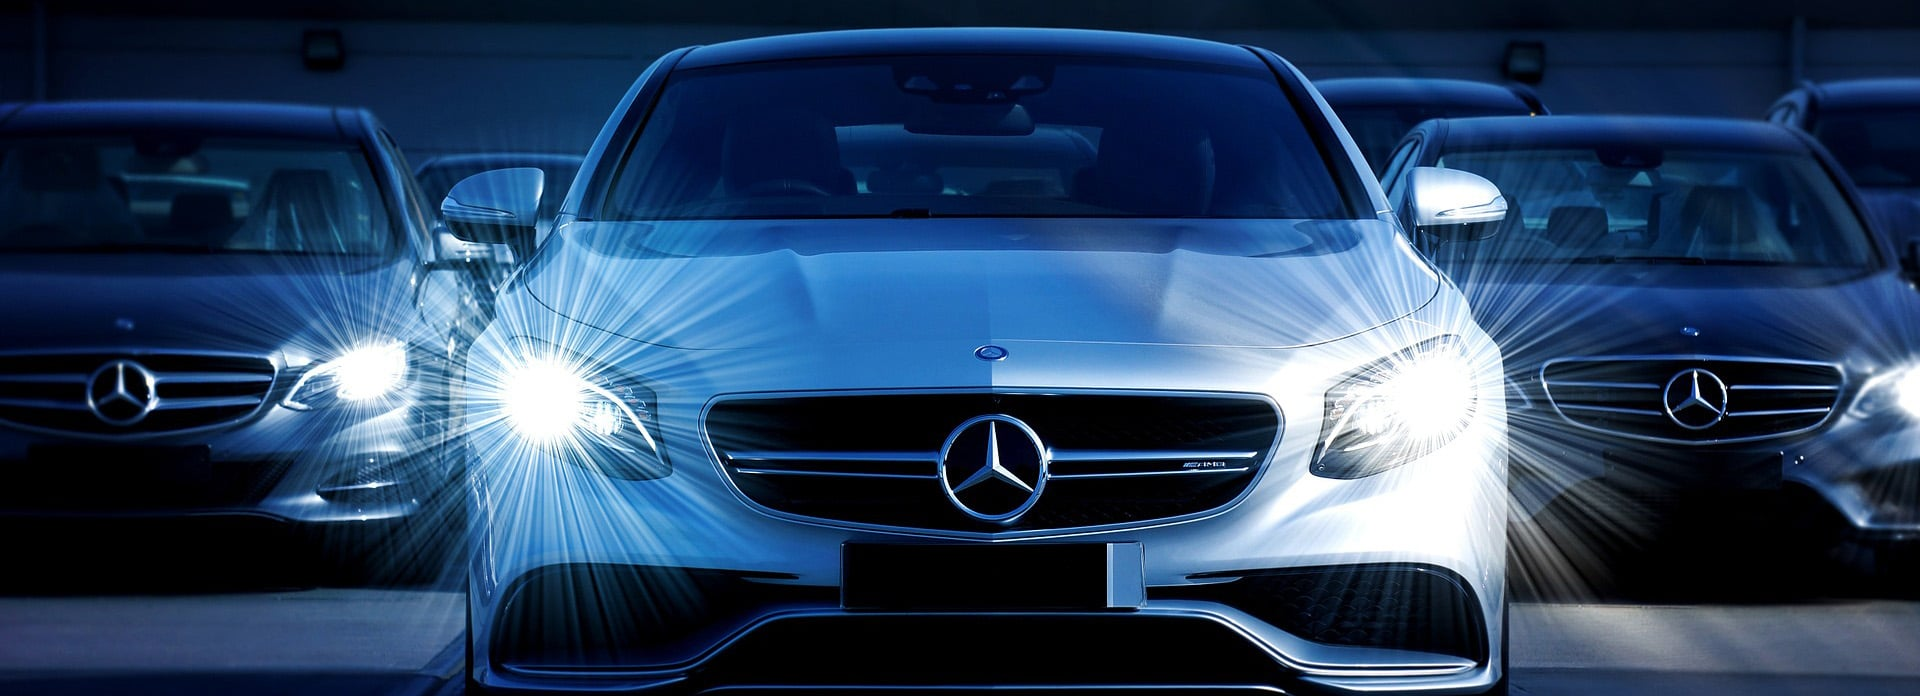 mercedes cars in online chauffeur dispatch software blog